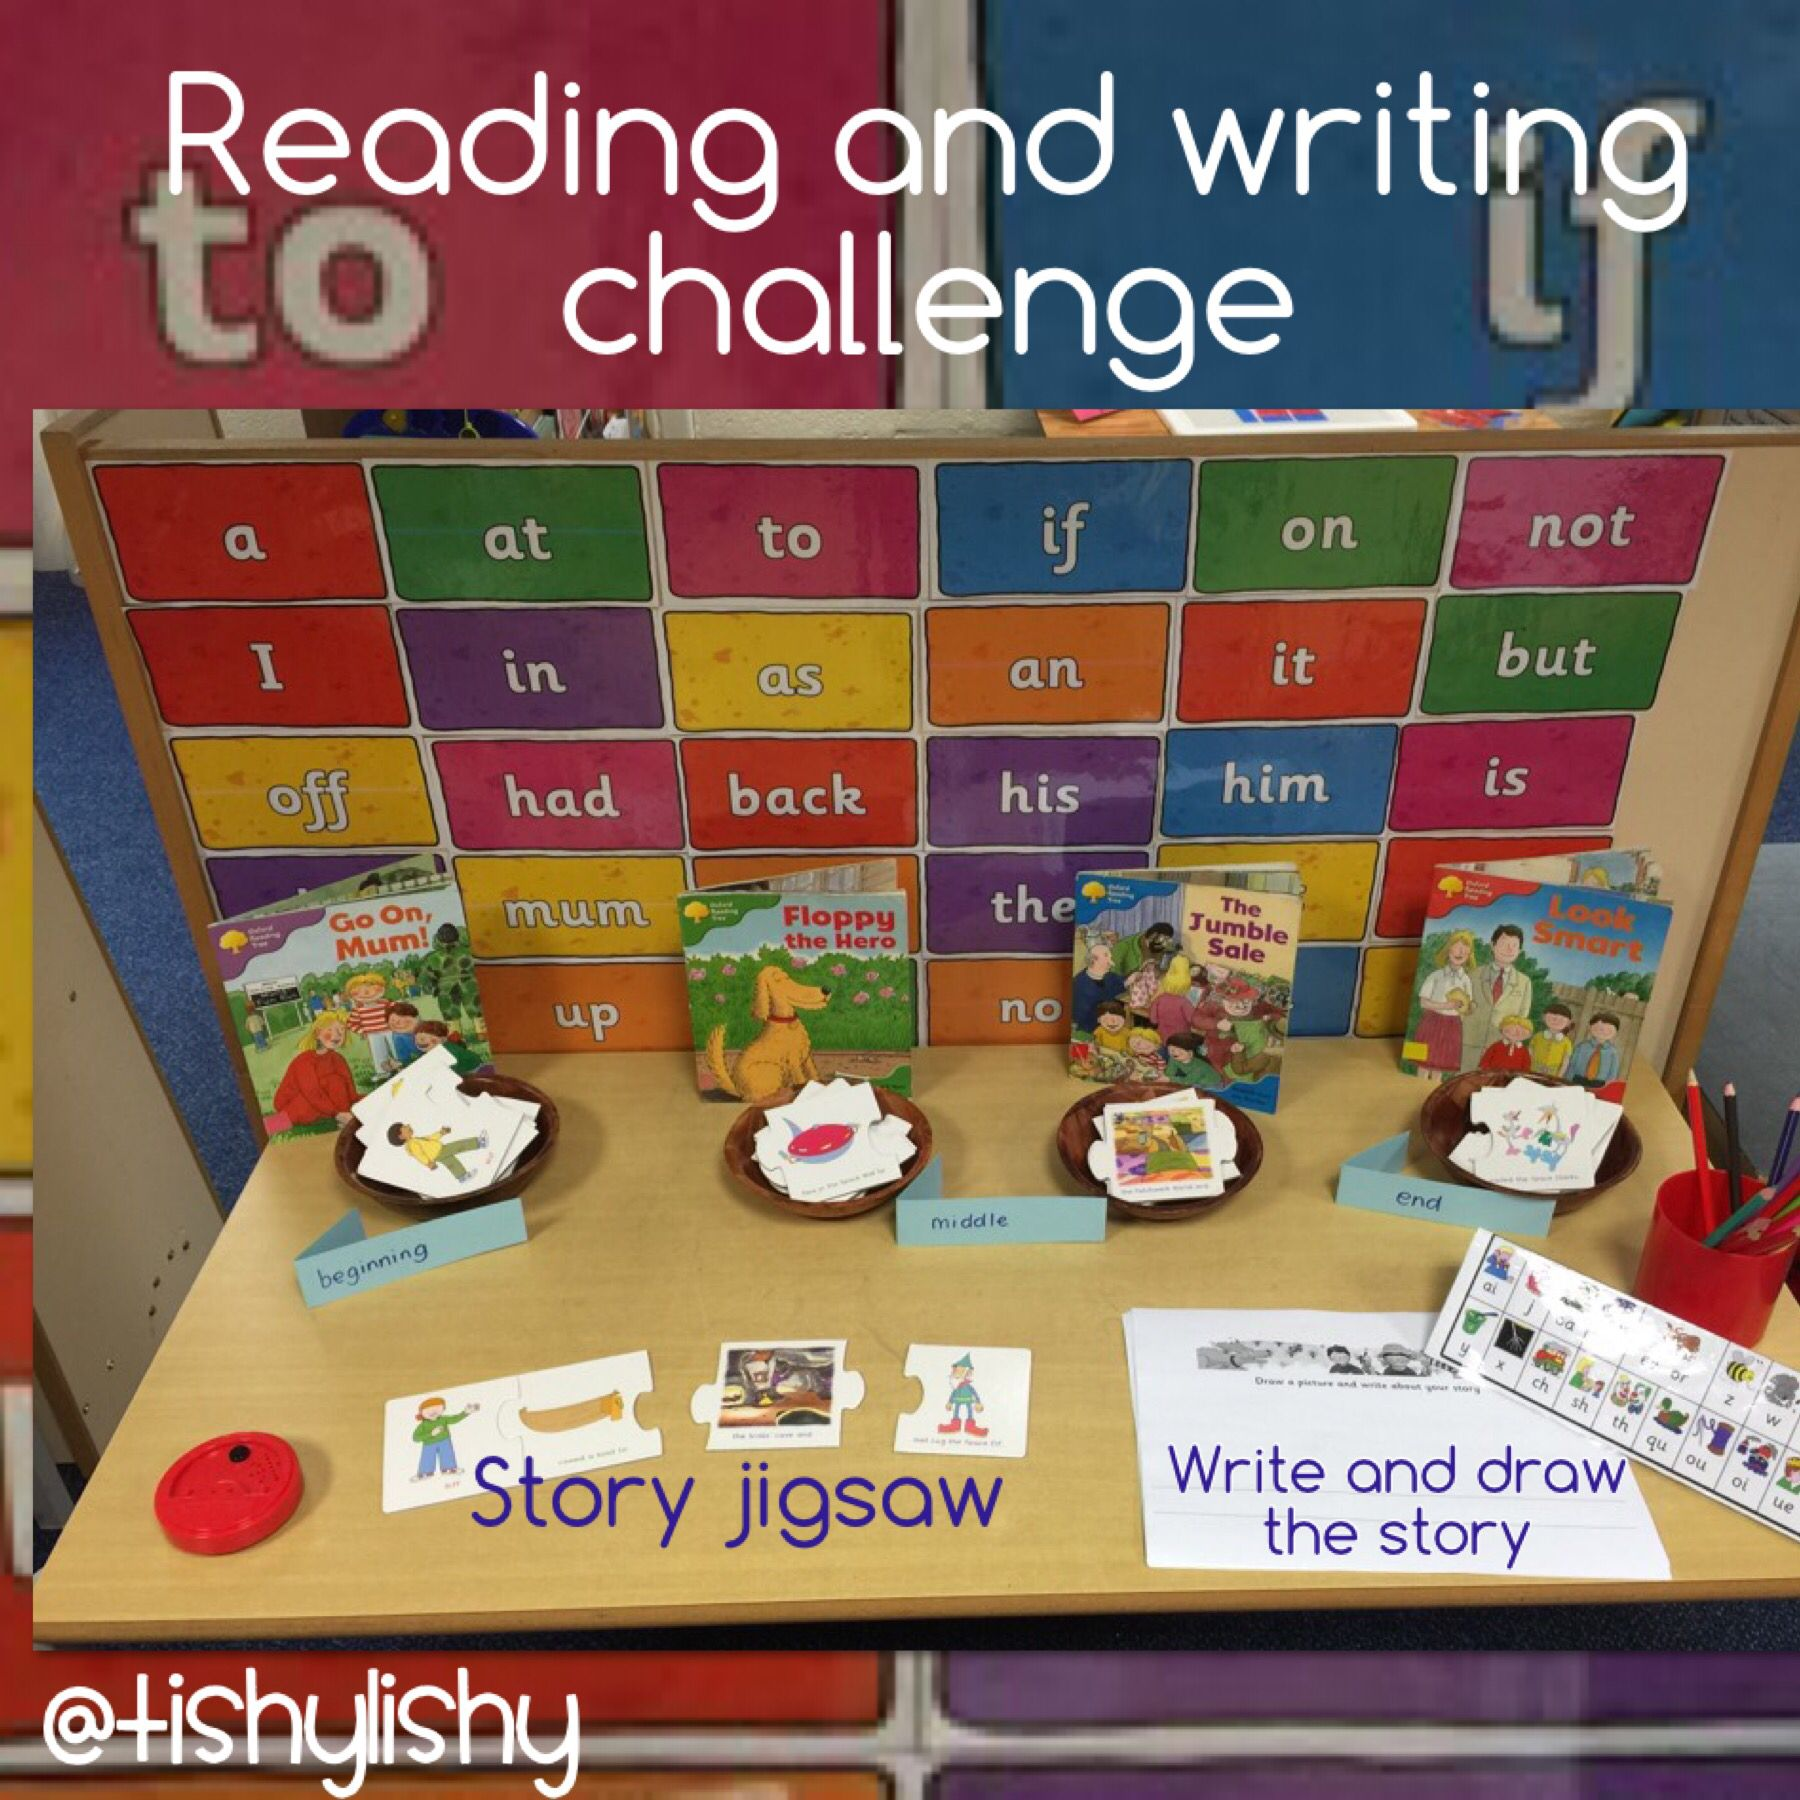 Reading And Writing Challenge. Use Jigsaw Pieces To Make A